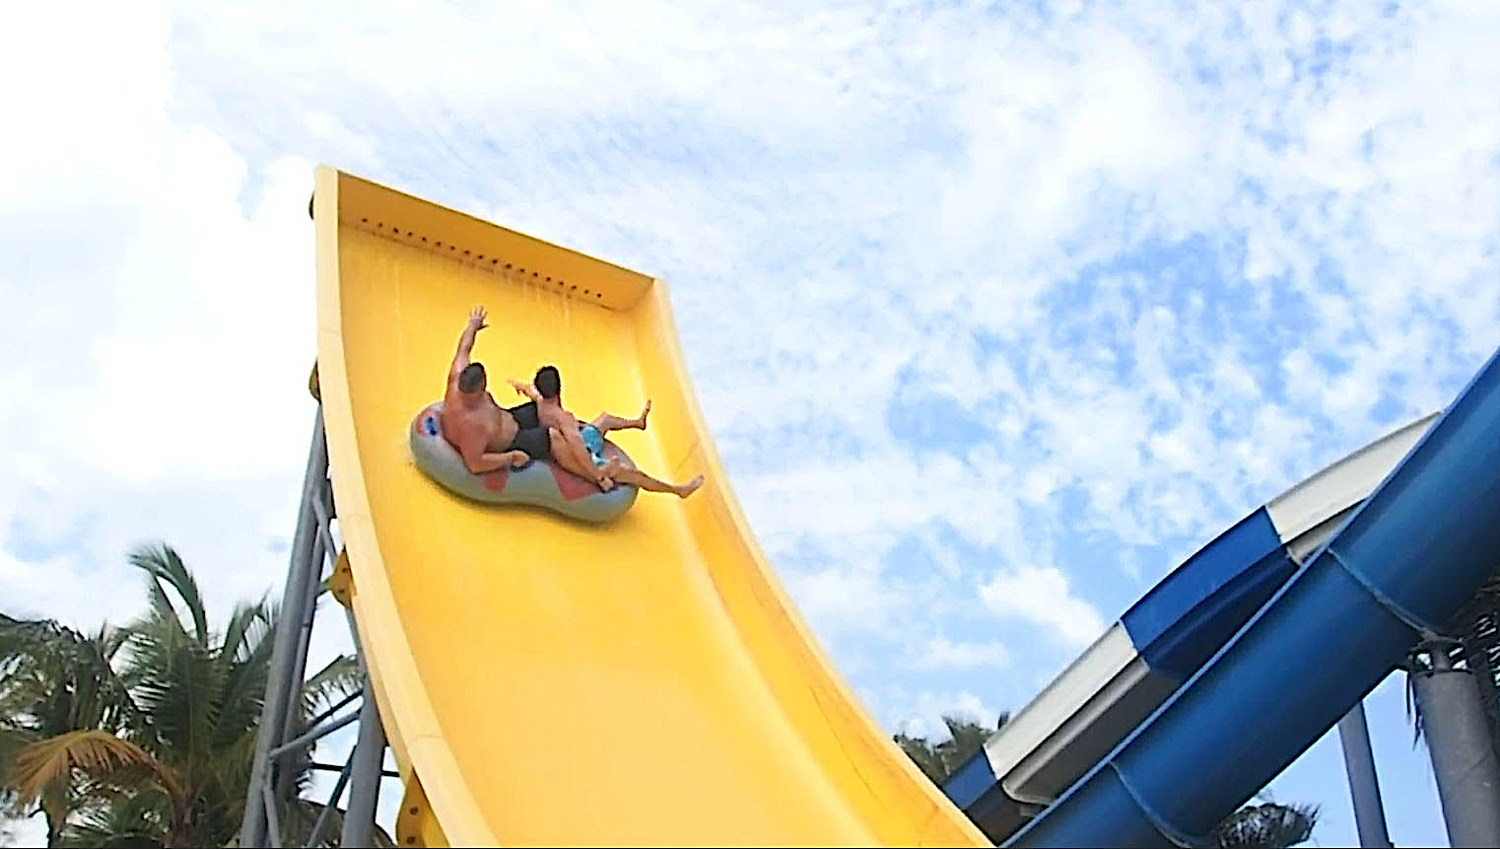 HOLD ON TIGHT. Dawson (left) hits the slide at Grand Memories Splash in Punta Cana. The Sunwing COO says he always packs a swimsuit when he travels. Photo courtesy of Andrew Dawson.